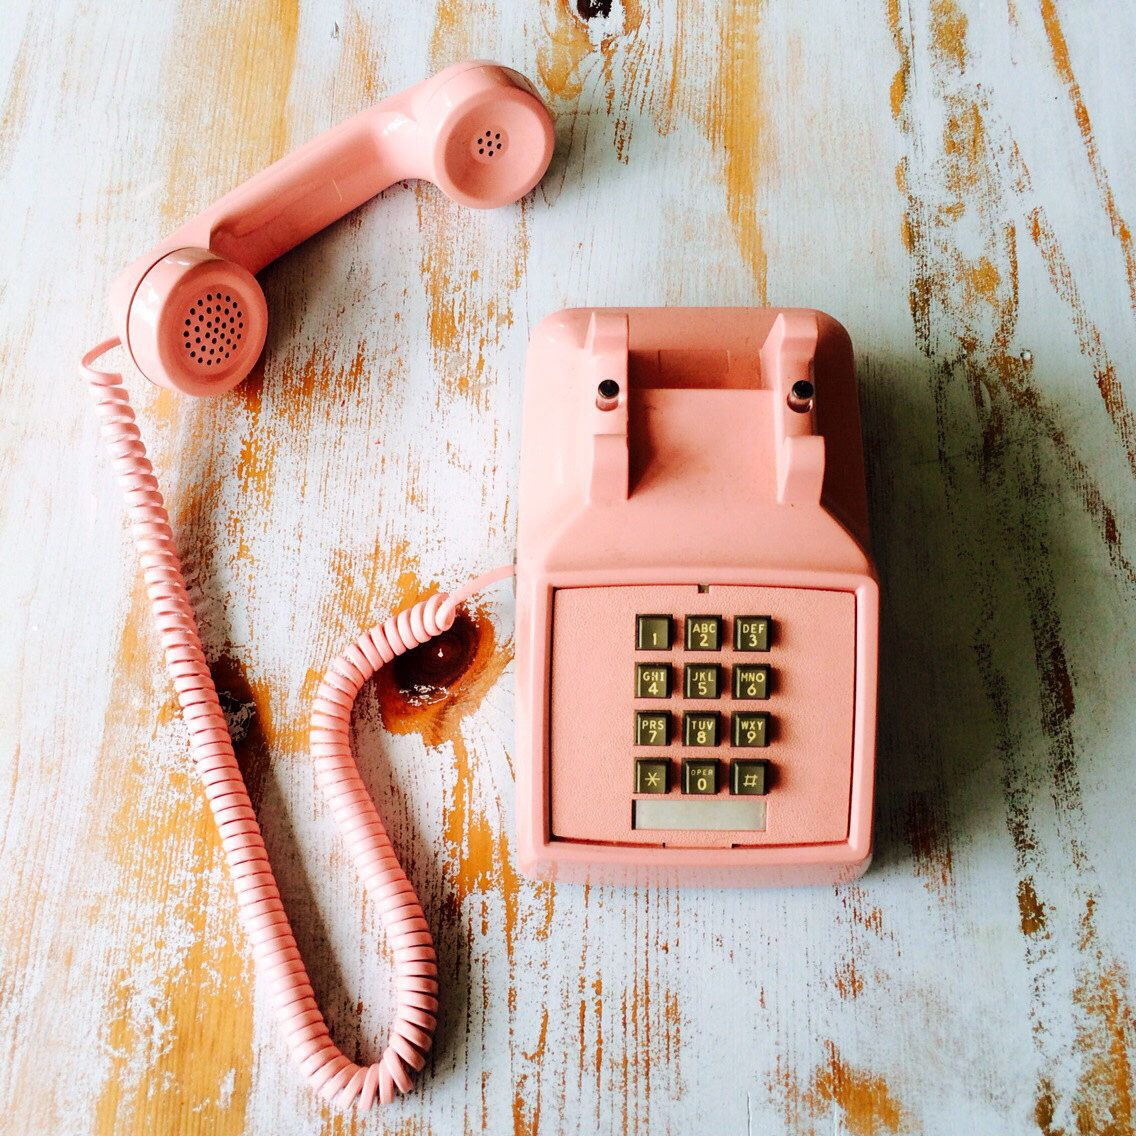 Vintage 1973 Western Electric 2500 Pink Touch Tone Telephone by ShopKingDude on Etsy https://www.etsy.com/listing/194730608/vintage-1973-western-electric-2500-pink